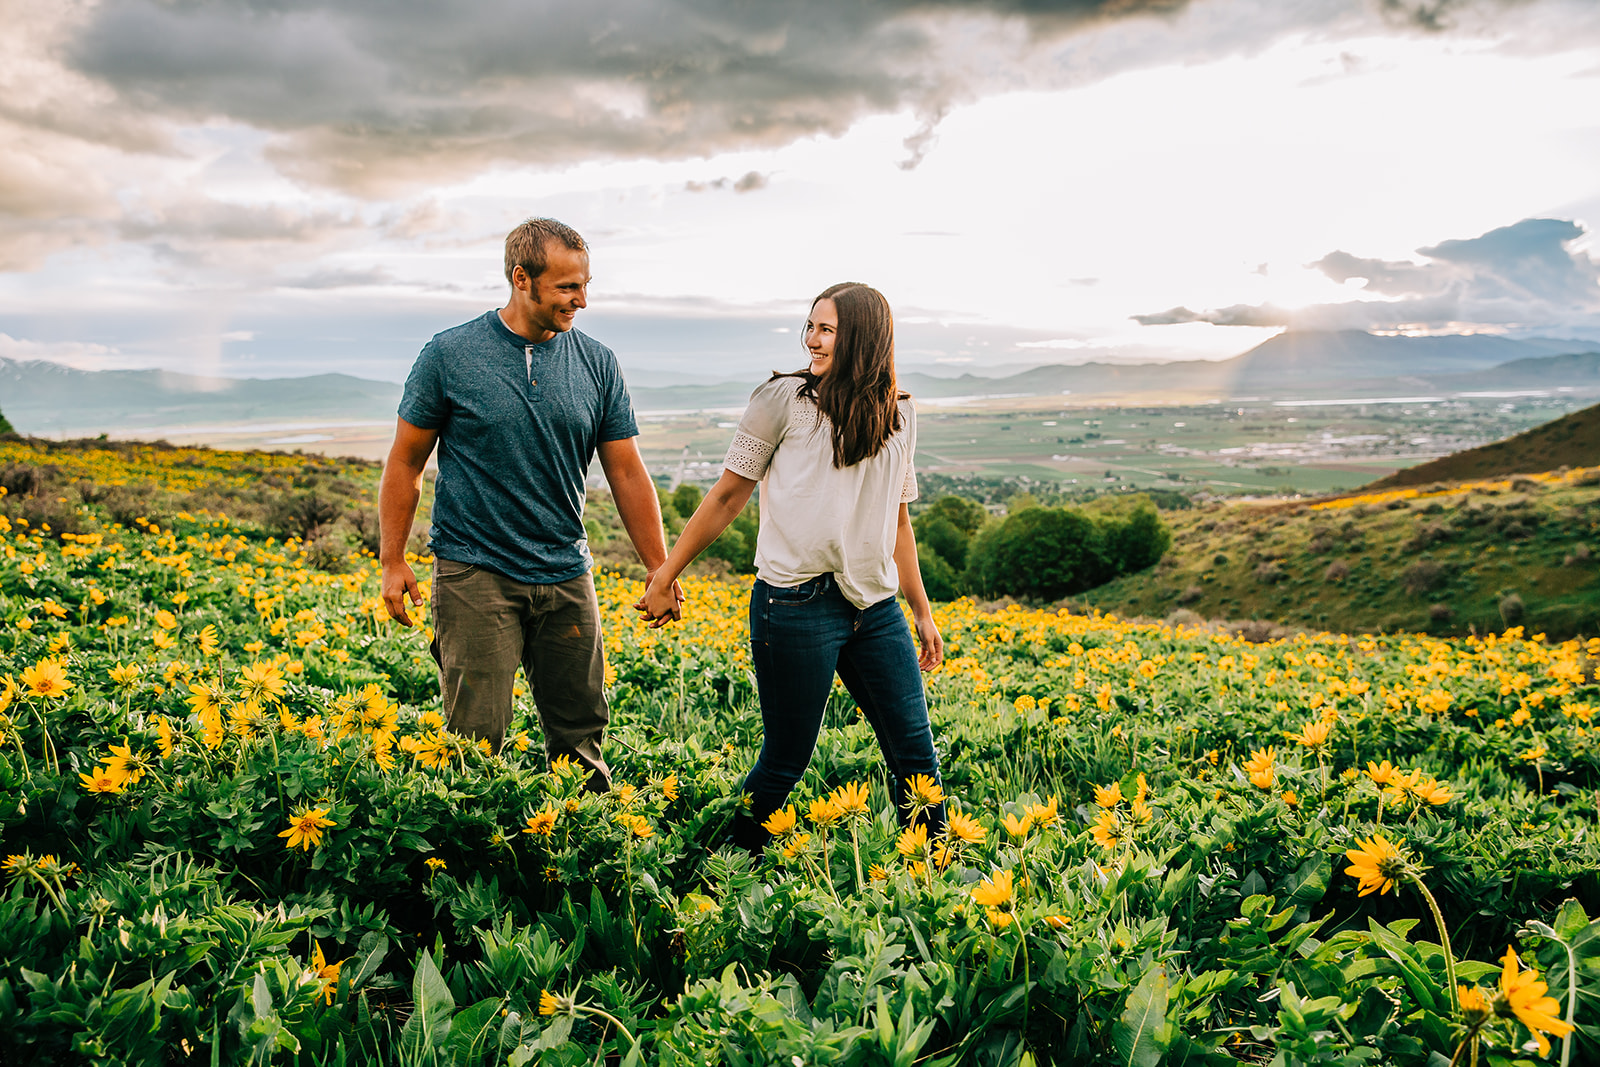 Beautiful sunflower field for photos. Mountain flowers. Mom and dad pose holding hands. Walking through a field of sunflowers. Happy families together. Holding hands walking through a field of flowers. Springtime mountain photos. Professional Family photos. #sunflowerfields #husbandandwife #mountainphotography #happyfamily #wildflowers #sunflowers #springtimephotos #momanddadphoto #familiestogetherforever